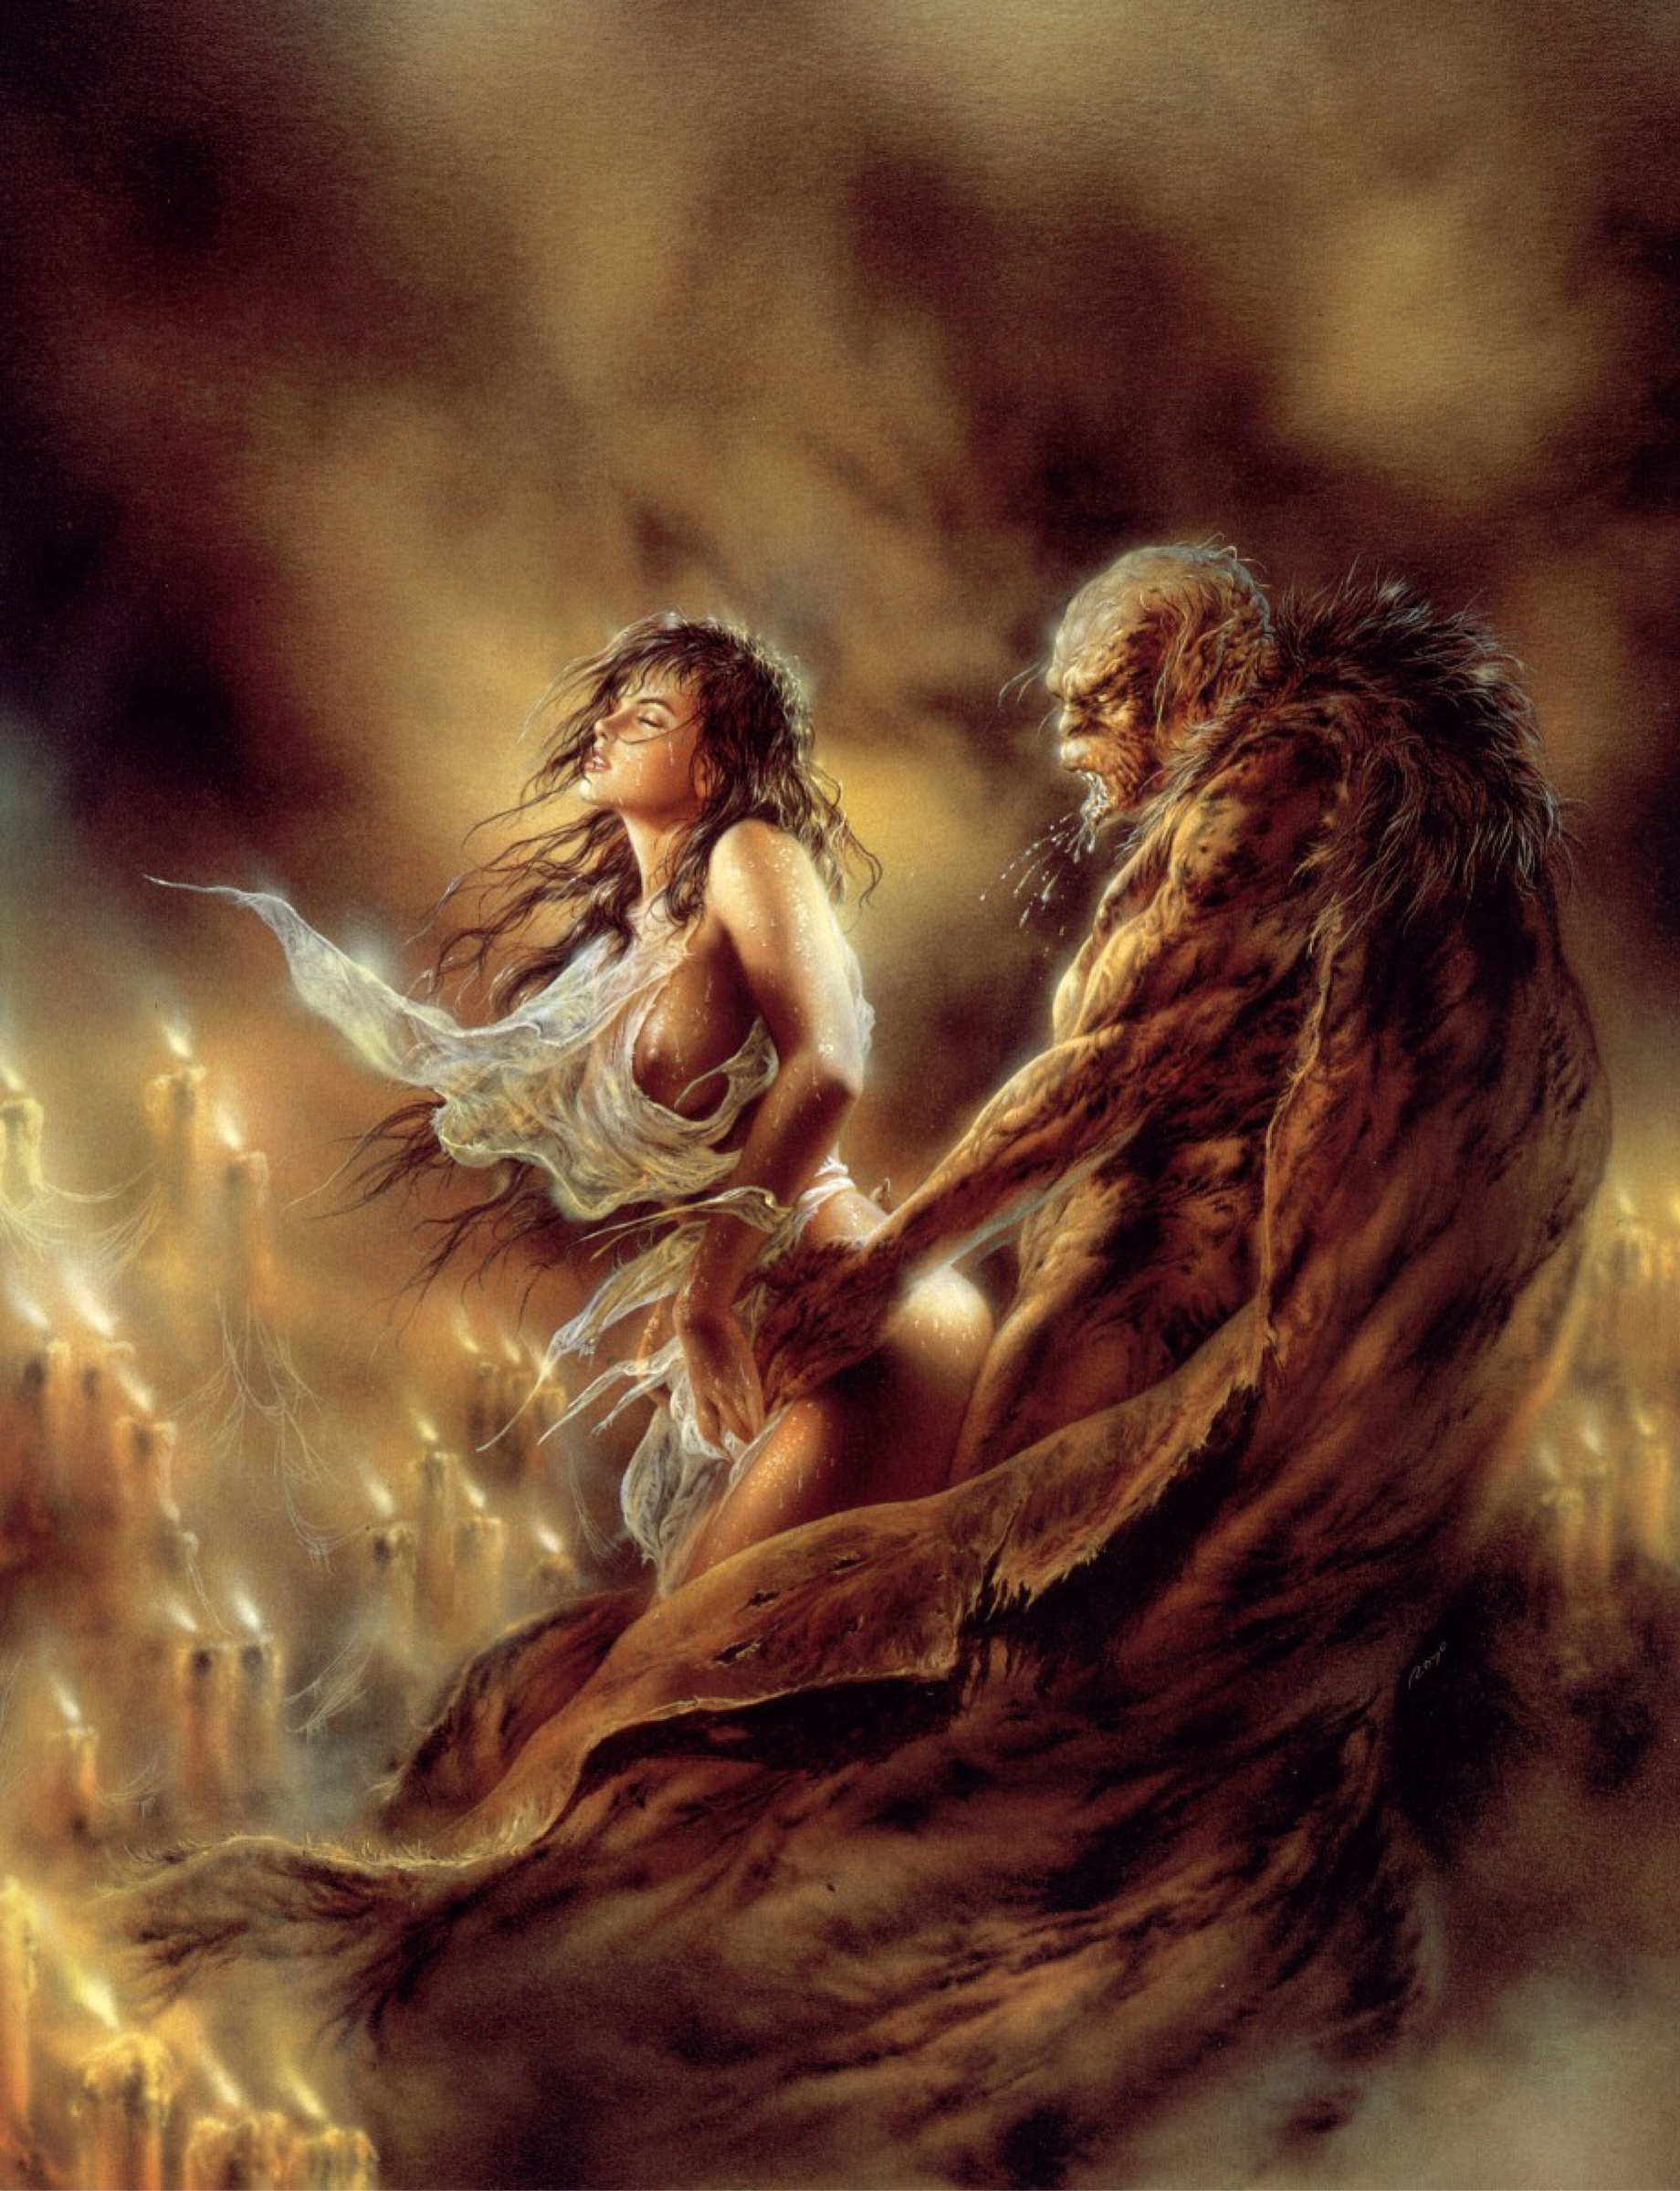 Secret sign by Luis Royo: History, Analysis & Facts